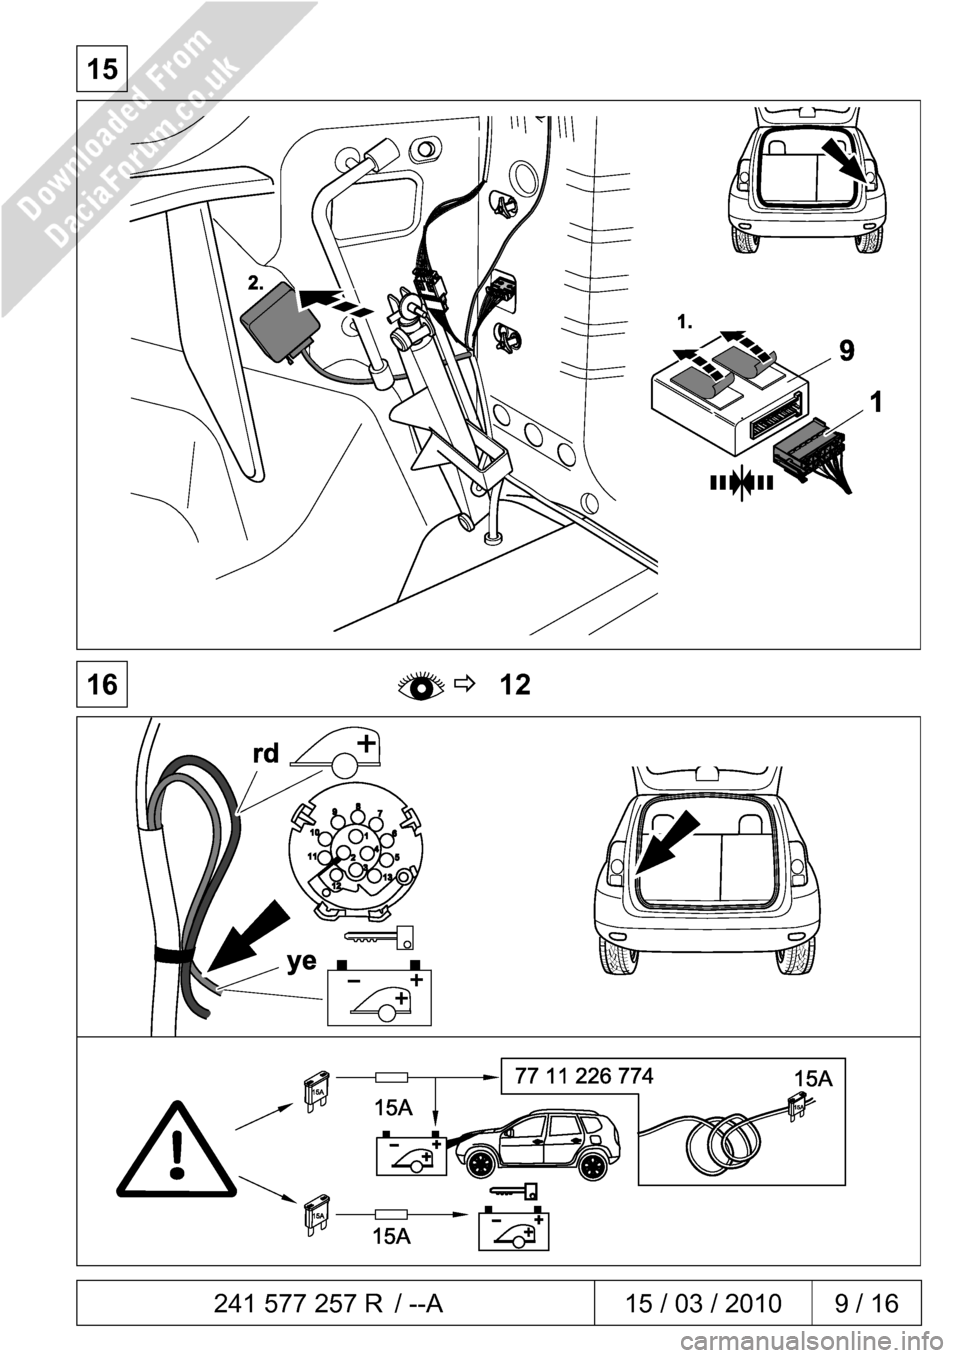 DACIA DUSTER 2010 1.G 13 Pin Towbar Fitting Guide Workshop Manual, Page 9